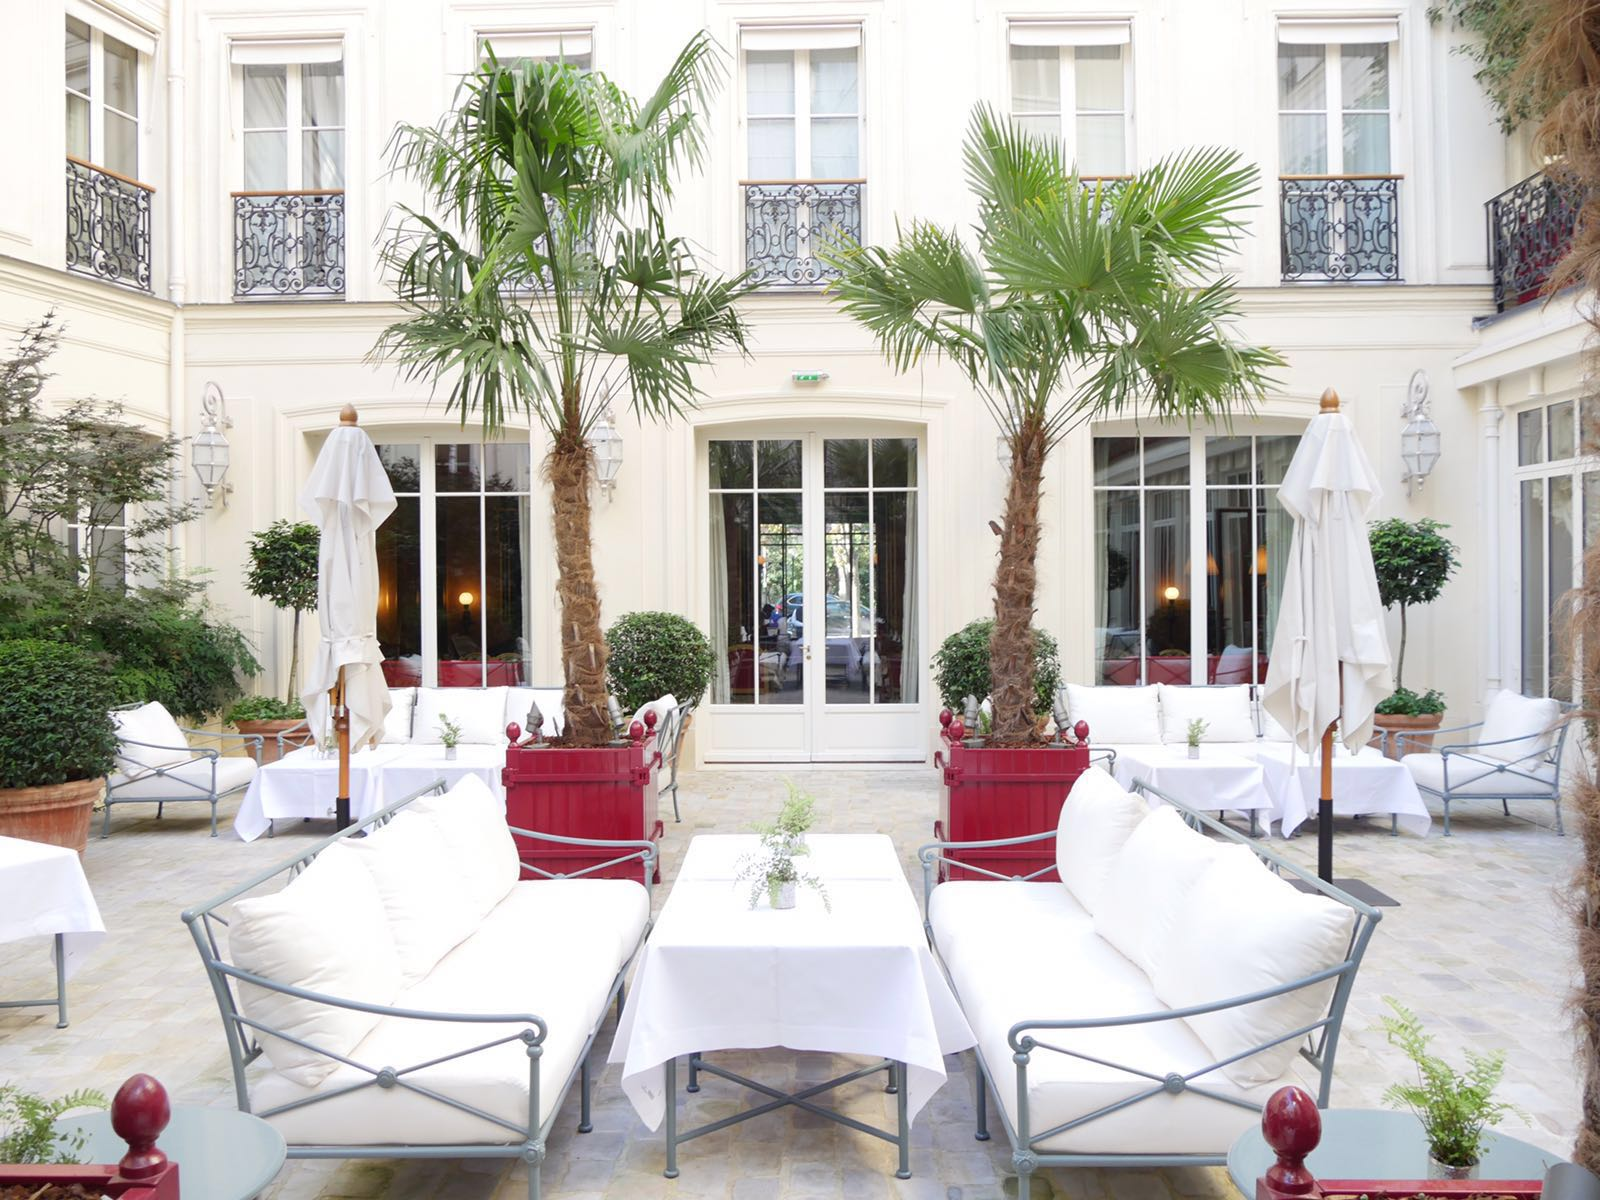 patio-la-reserve-paris-hotel-spa